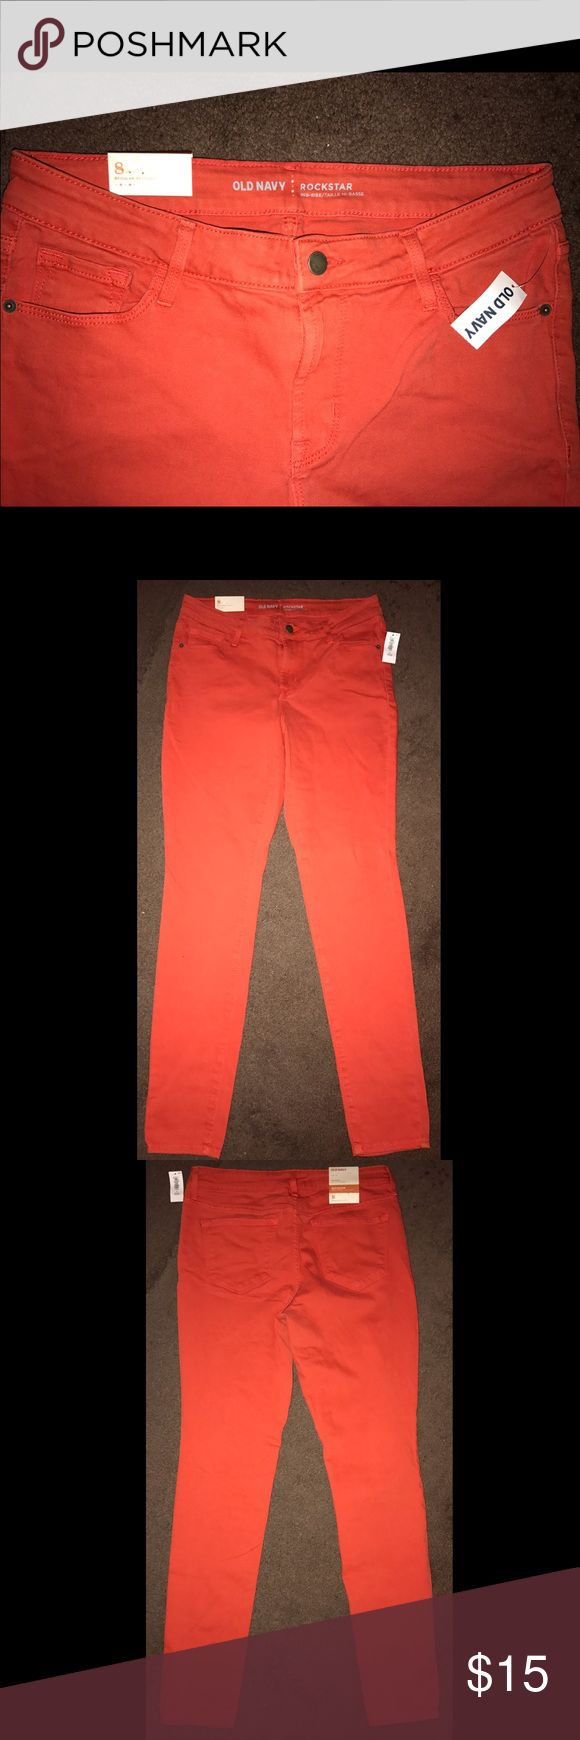 "Old Navy Pop-Color Super Skinny Rockstar Jeans-NWT BRAND NEW - Never worn!  Jeans have original Old Navy tags.  Old Navy Mid-Rise Rockstar Super Skinny Jeans - size 8 Regular.  Material is 91% cotton, 7% elasterell-p, 2% spandex/elastane.  Color is ""hot tamale"" per Old Navy's website.  ***PLEASE NOTE: WE ARE NOT ACCEPTING TRADES OR OFFERS AT THIS TIME*** Old Navy Jeans Skinny"